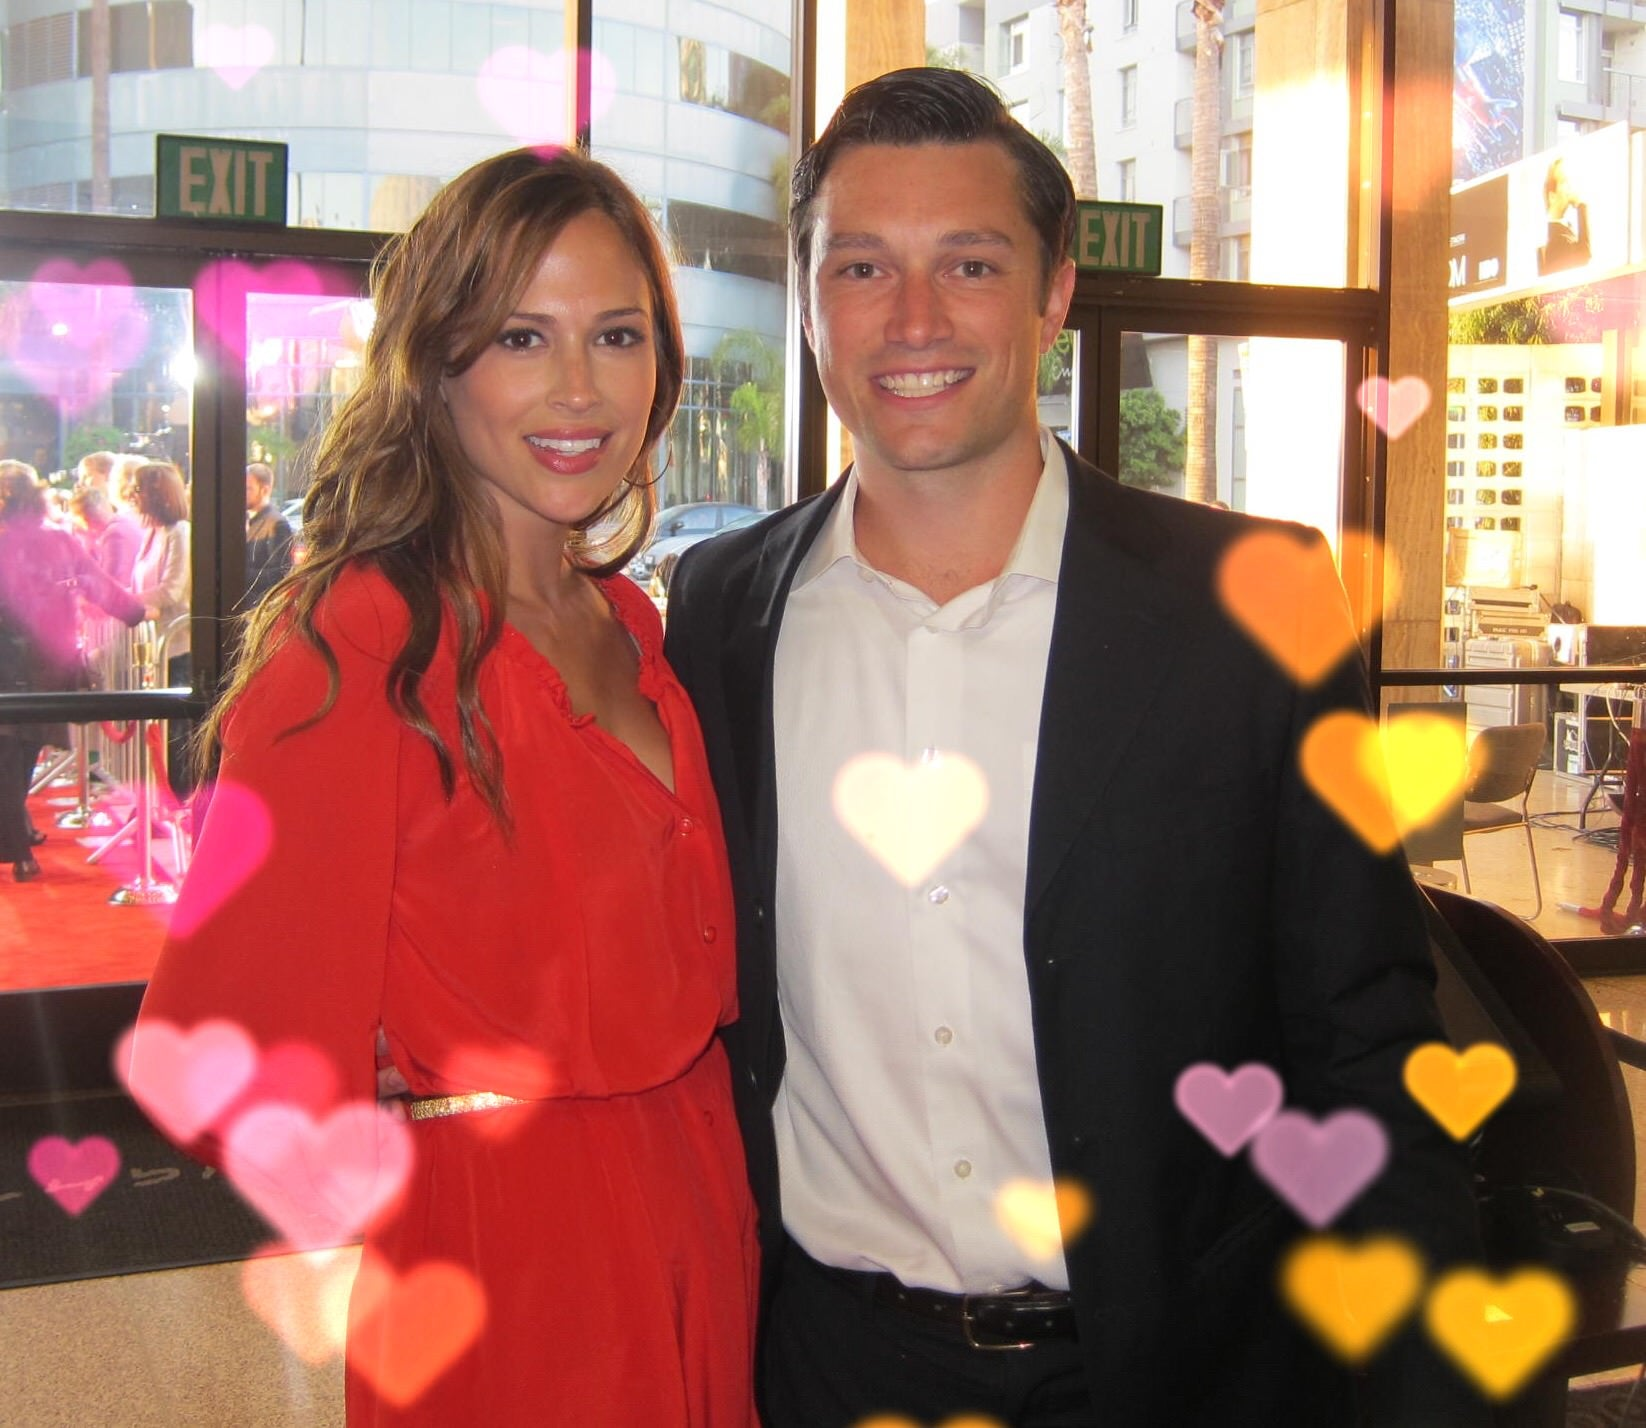 Brook Ruder, Andrew Neiman, couple, cute couple, Chicago, lady in red, valentines day, professional organizer